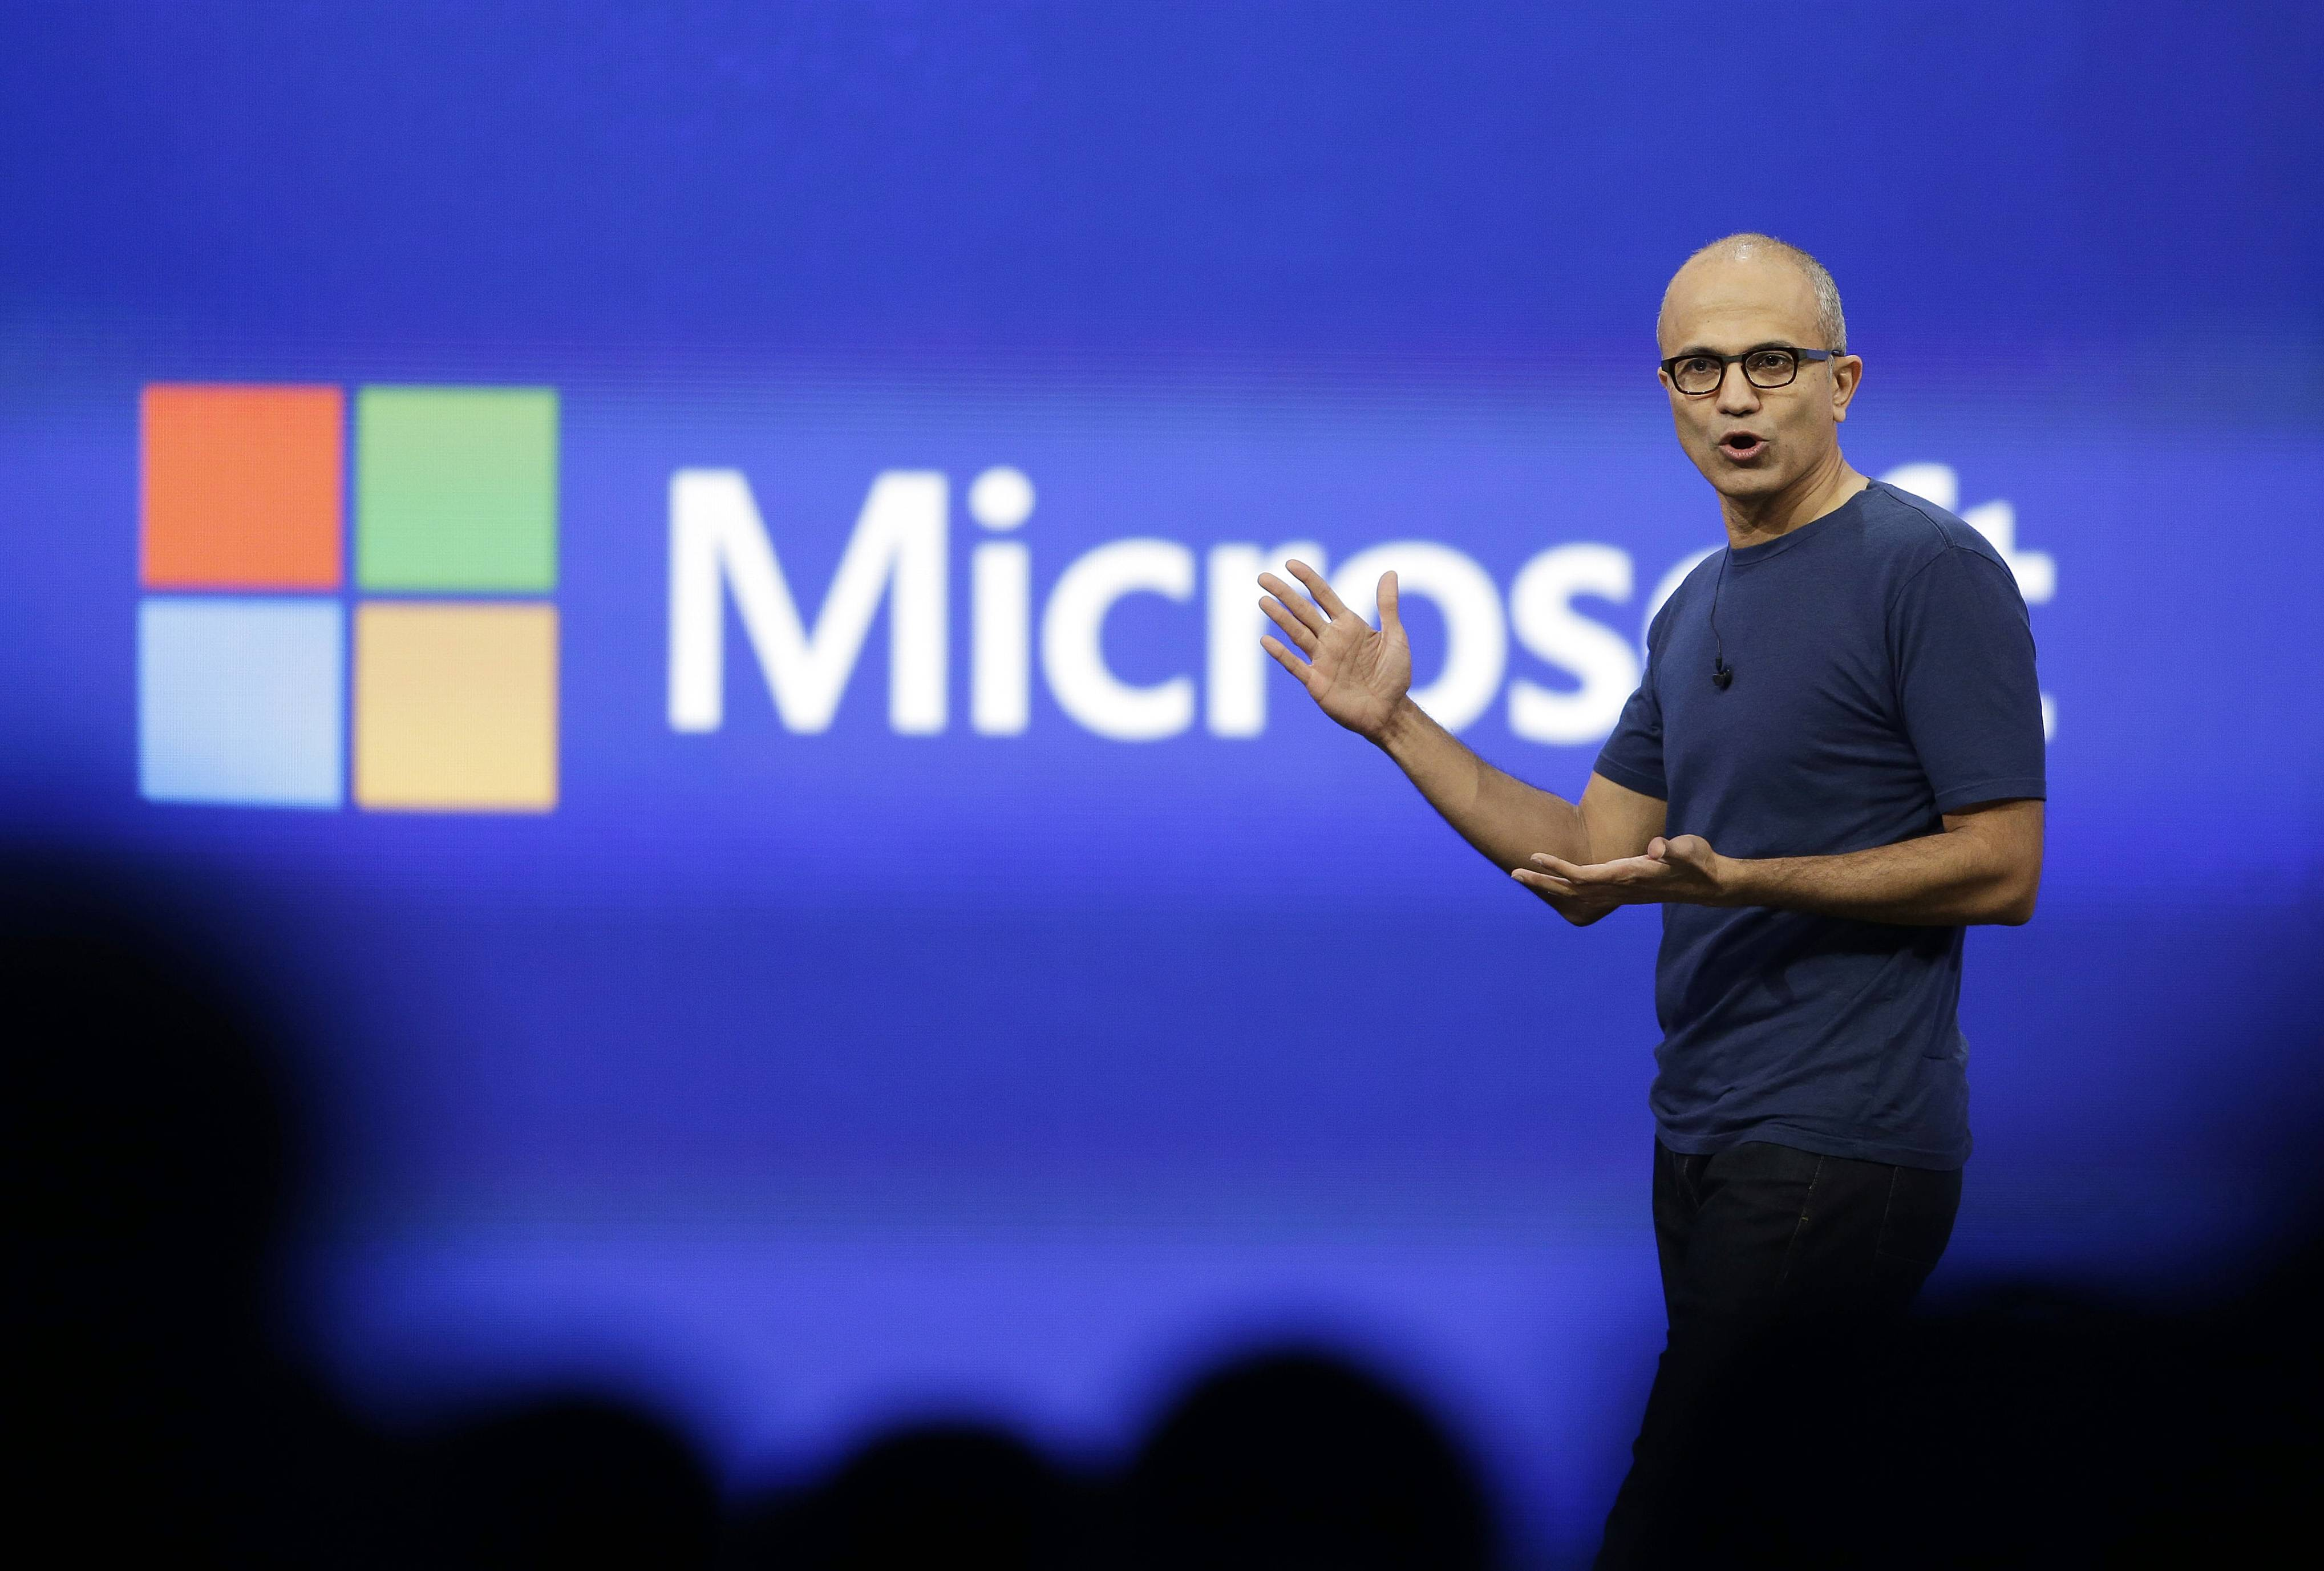 Microsoft CEO Satya Nadella gestures during the keynote address of the Build Conference in San Francisco.